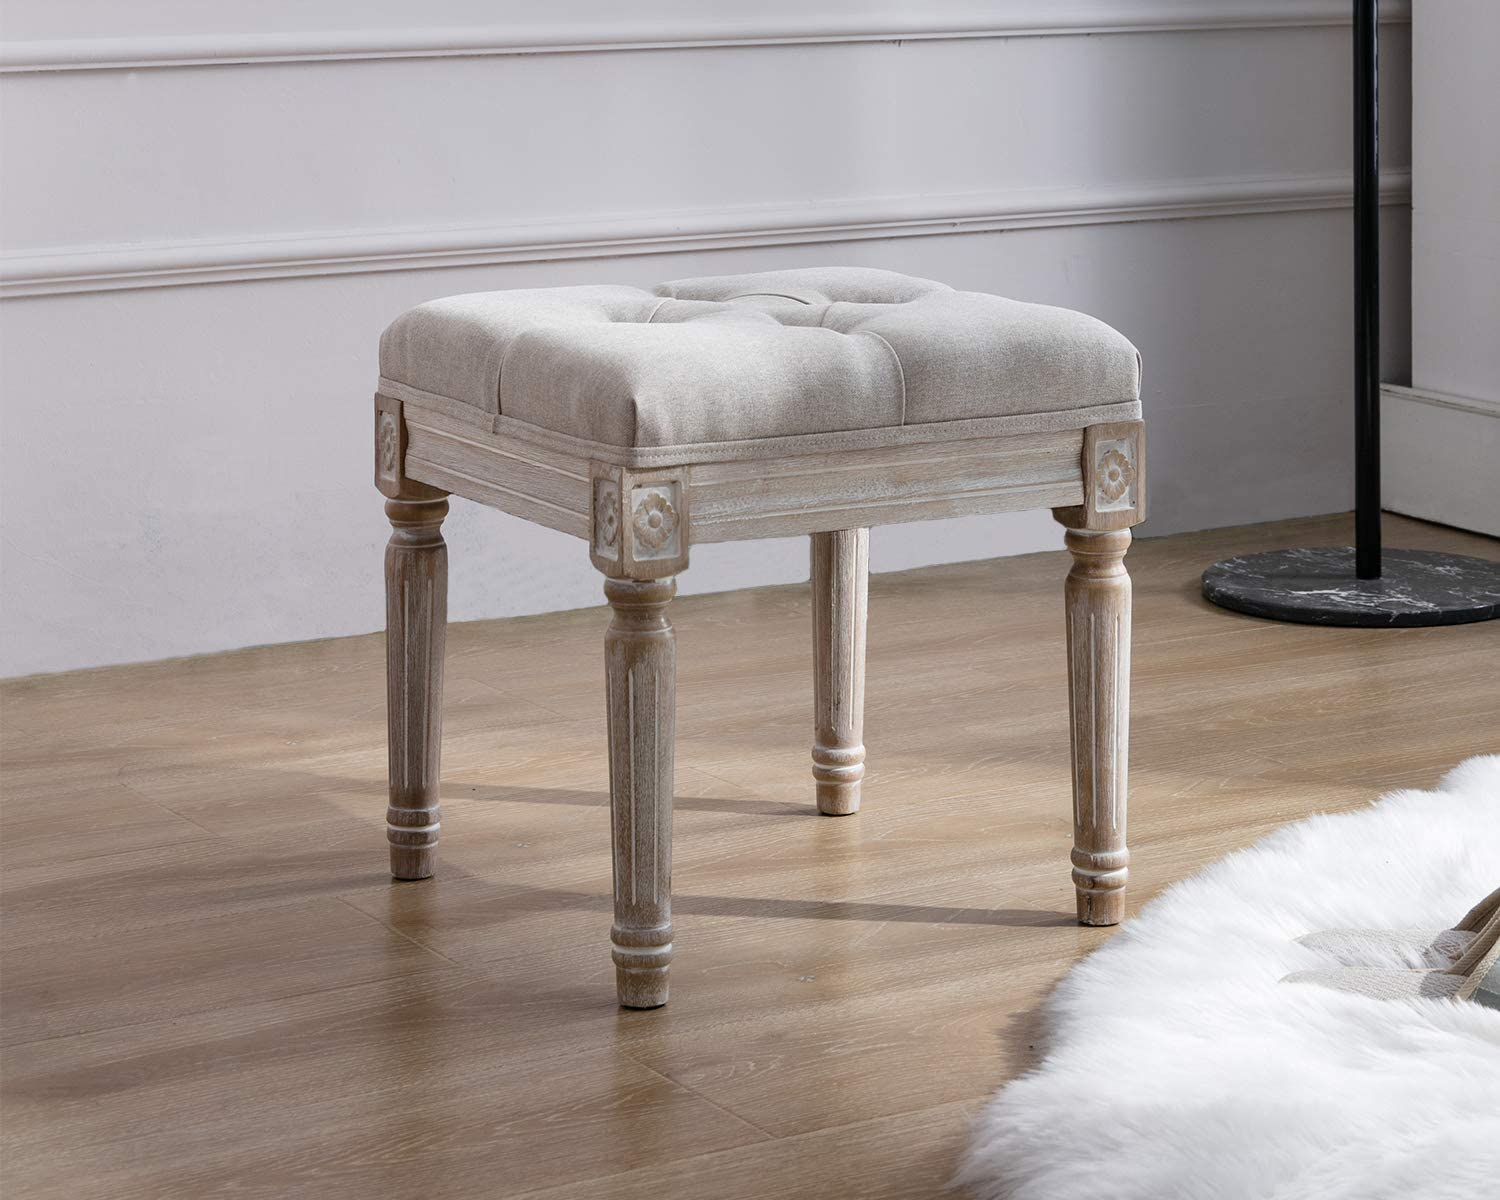 Kmax Small Padded Bench, Square Upholstered Rustic Ottoman Bench, Vanity Stools for Bedroom, 15.75